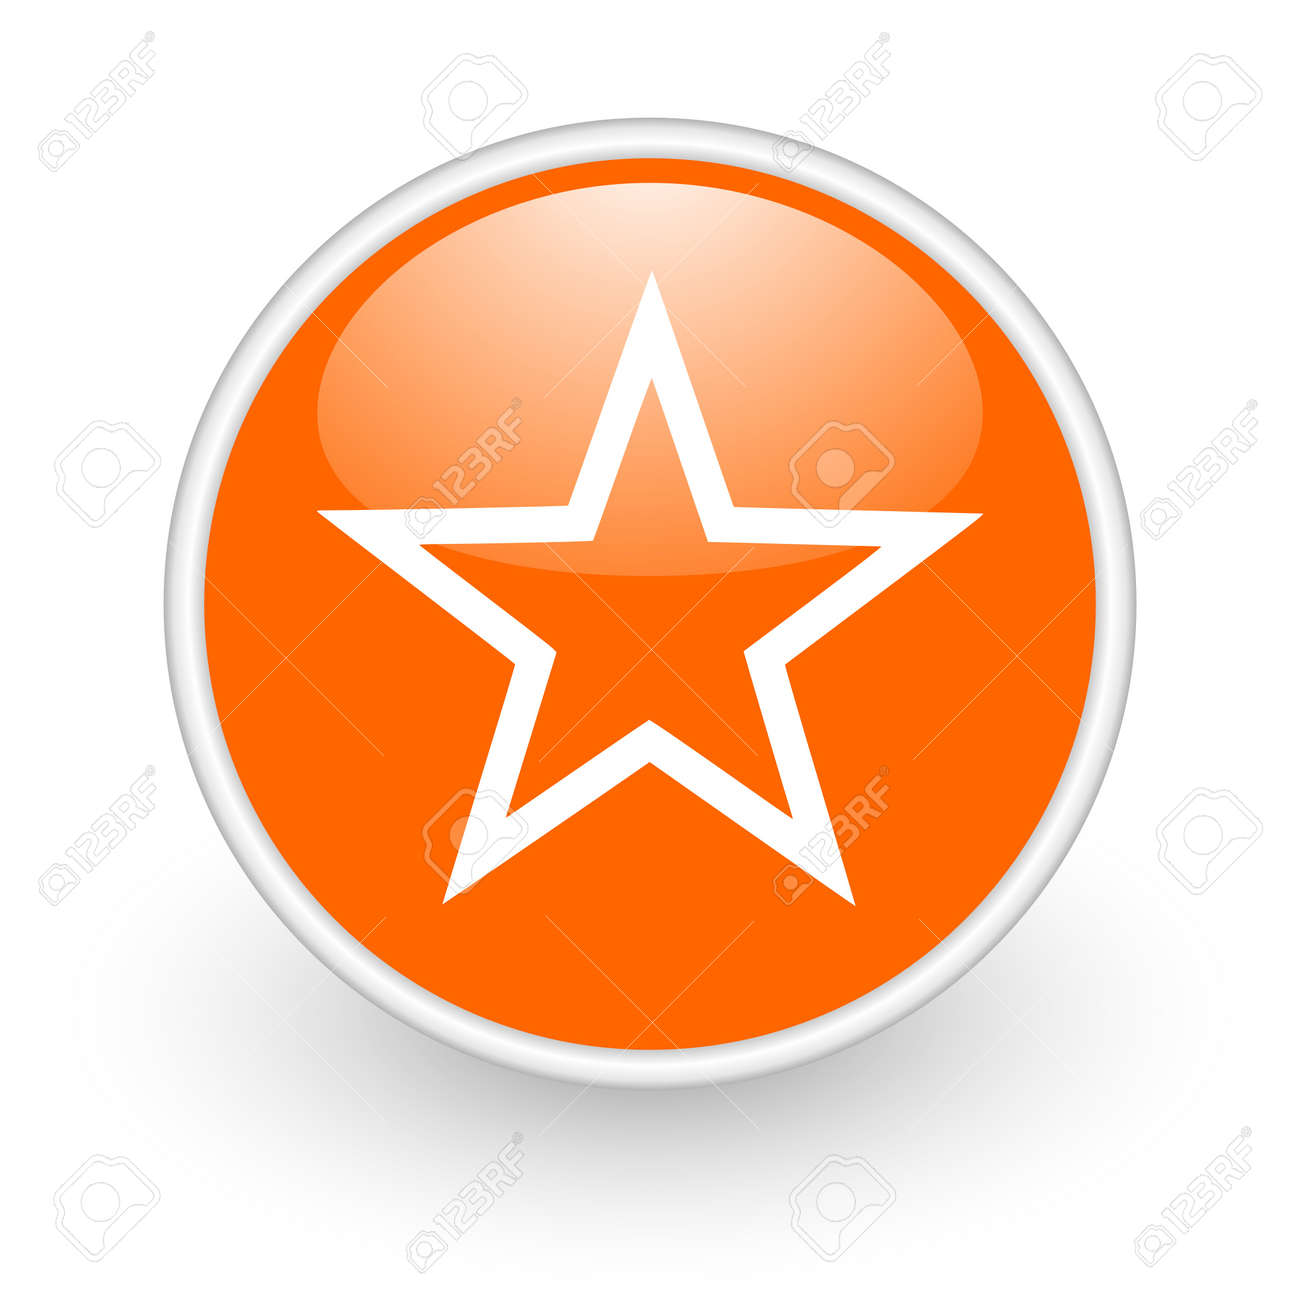 star orange circle glossy web icon on white background Stock Photo - 17761286